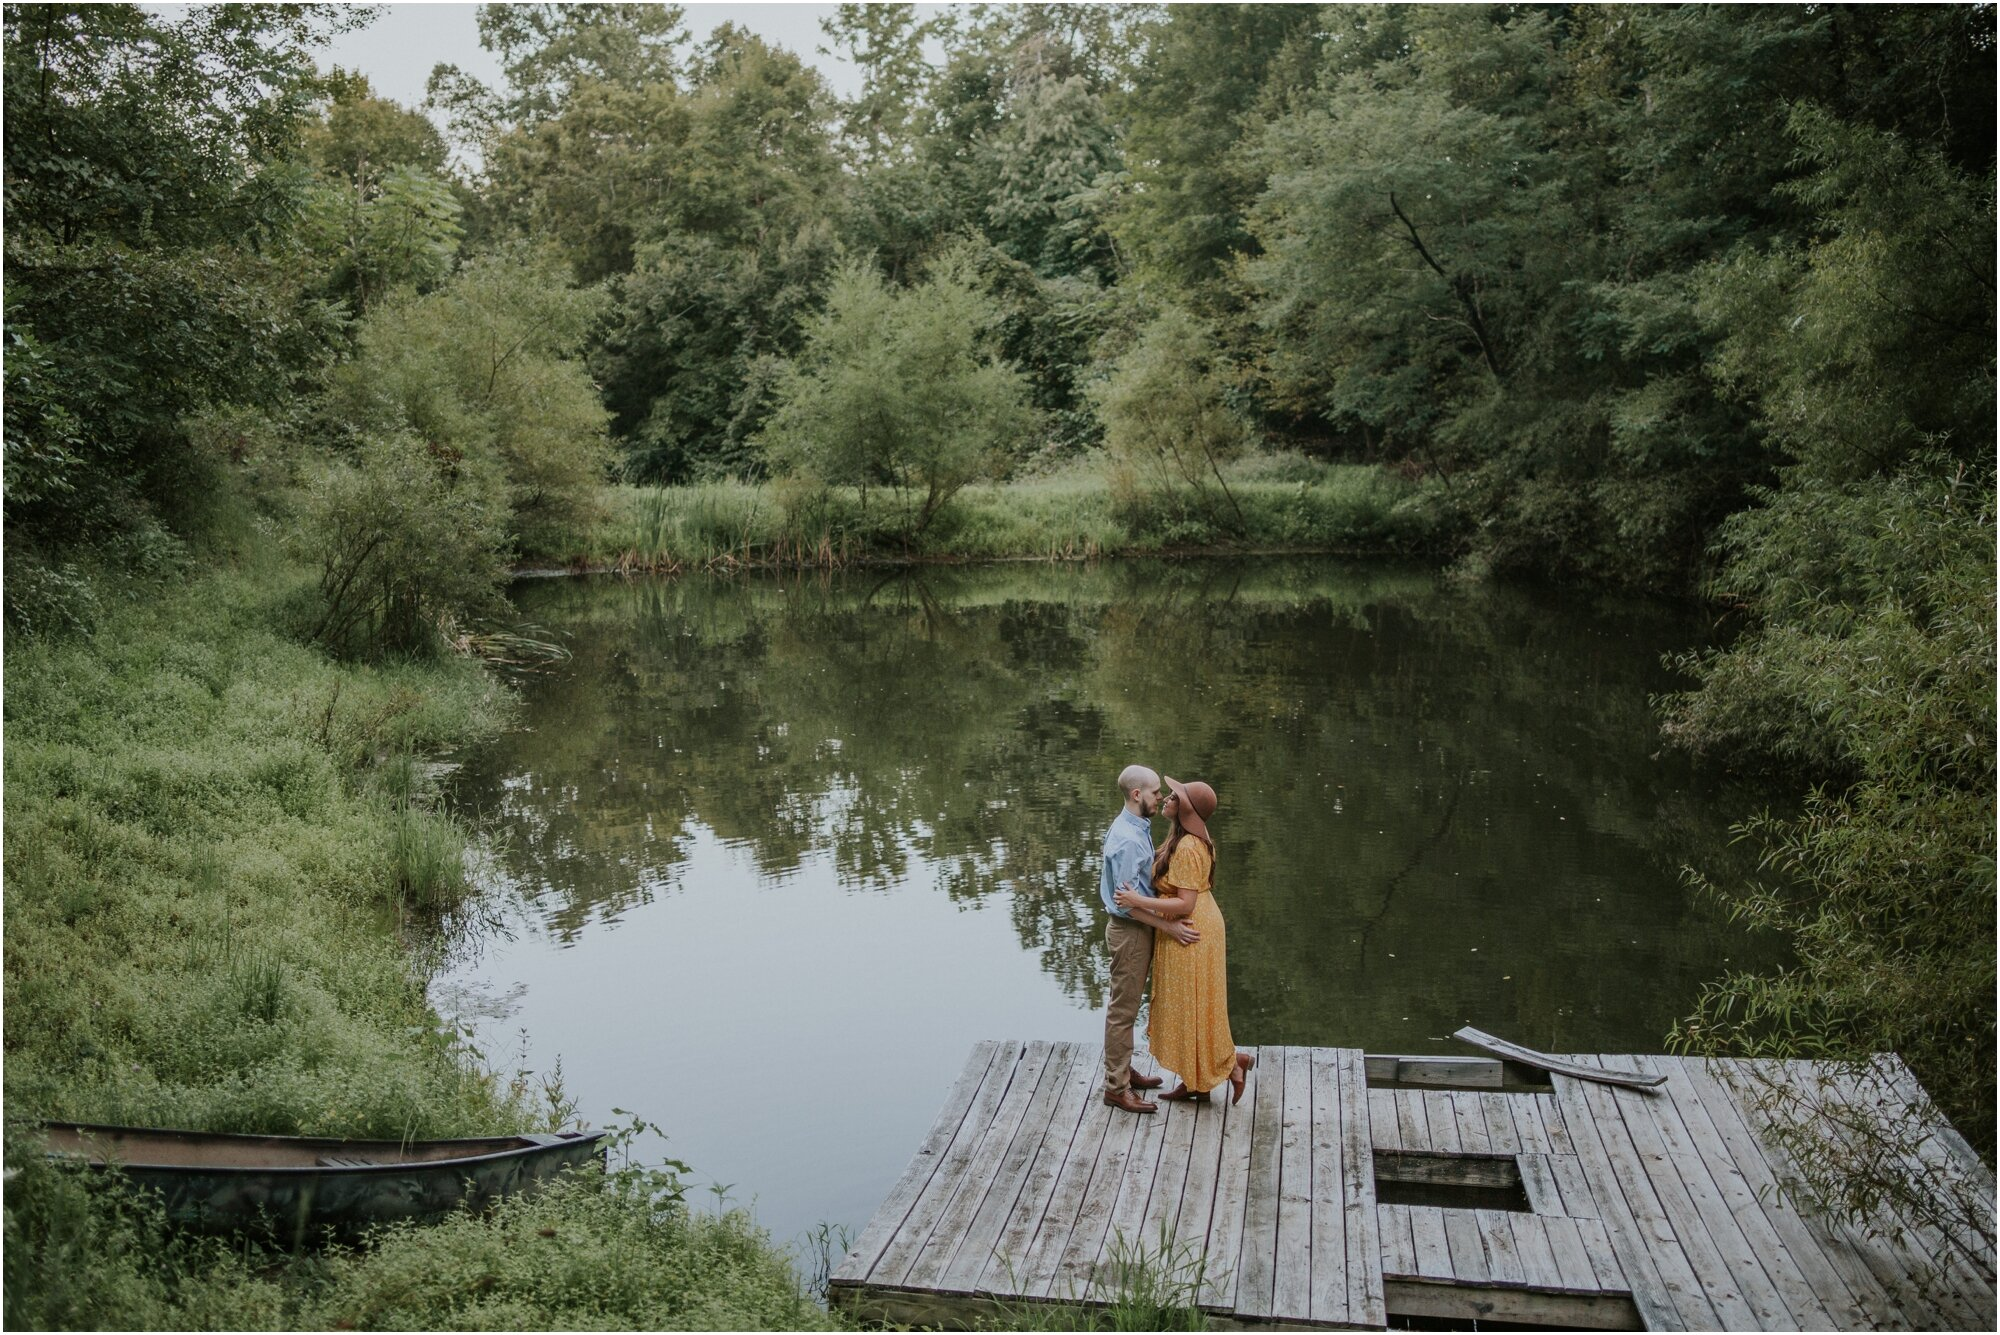 kingsport-tennessee-backyard-pond-bays-mountain-summer-engagement-session_0032.jpg